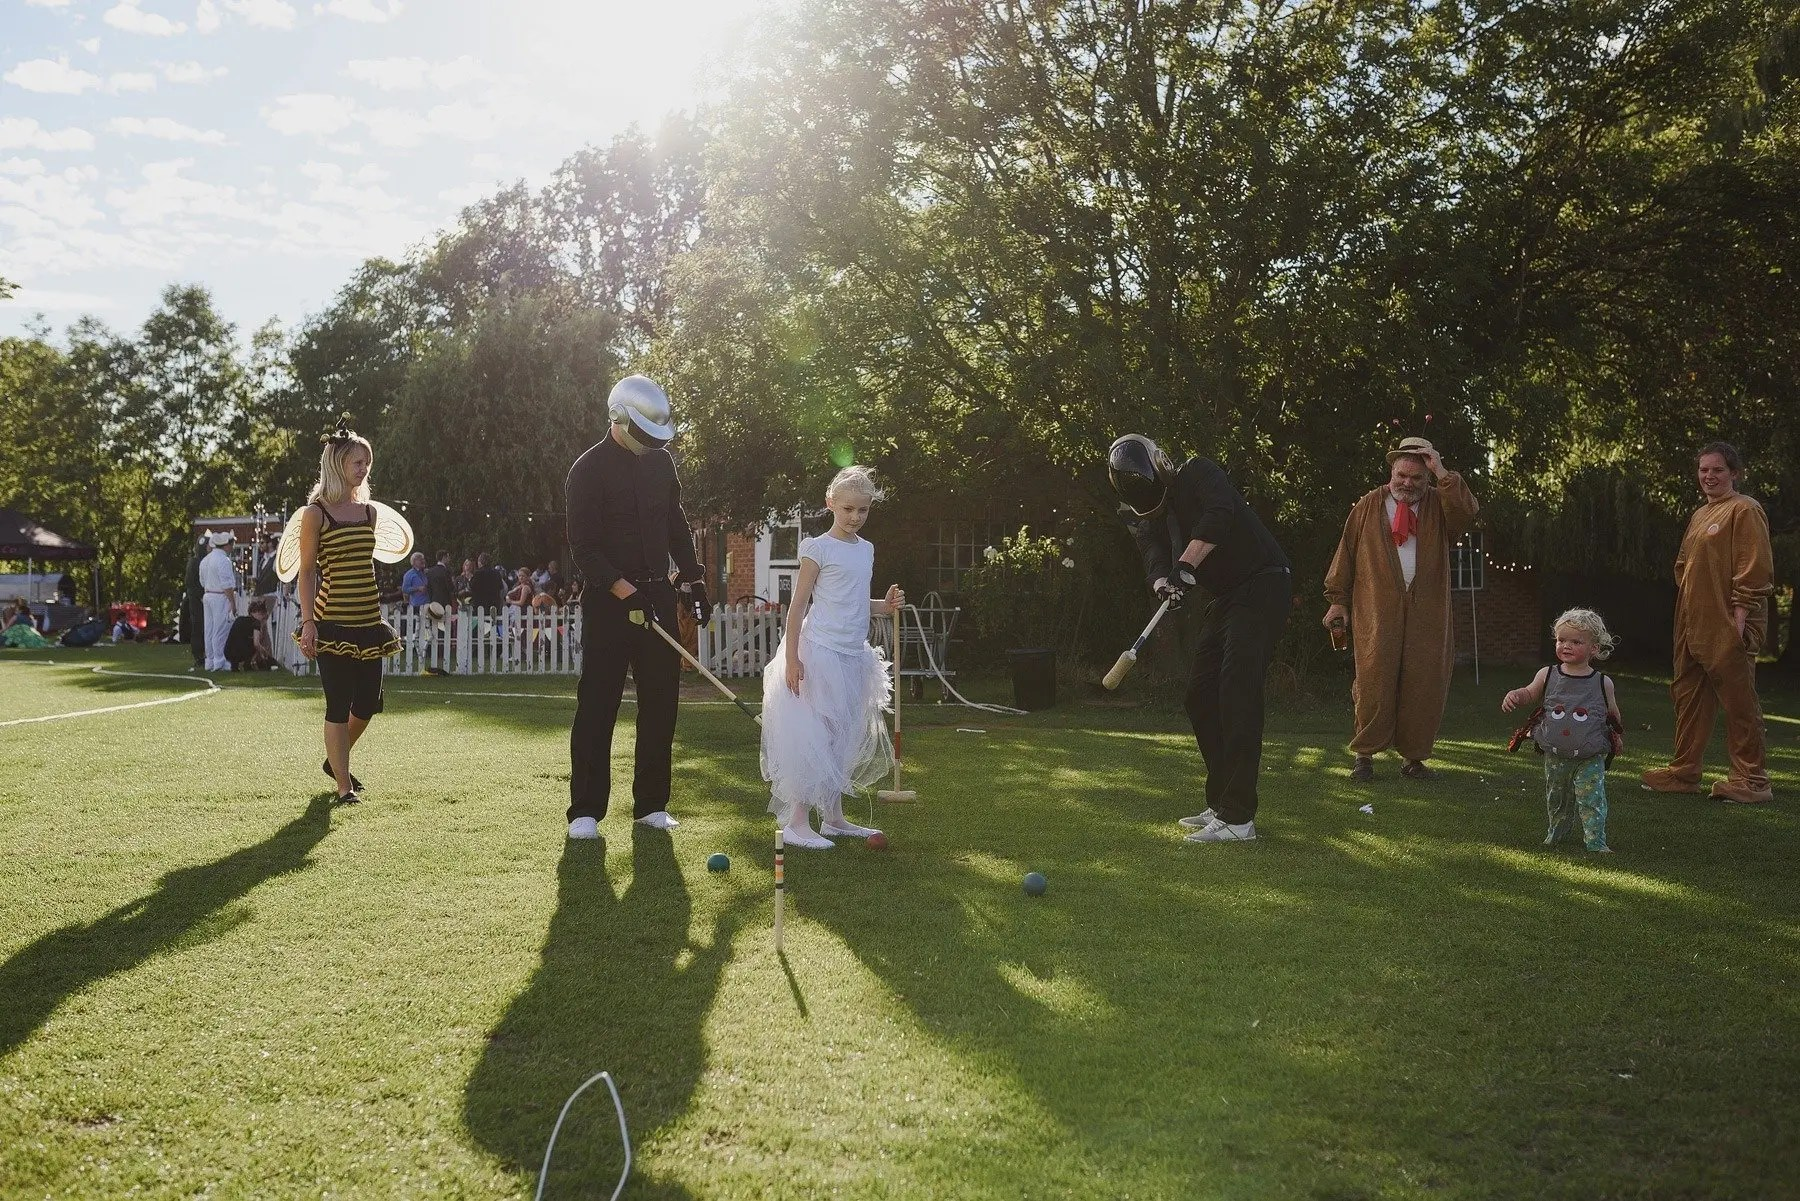 daft punk playing croquet